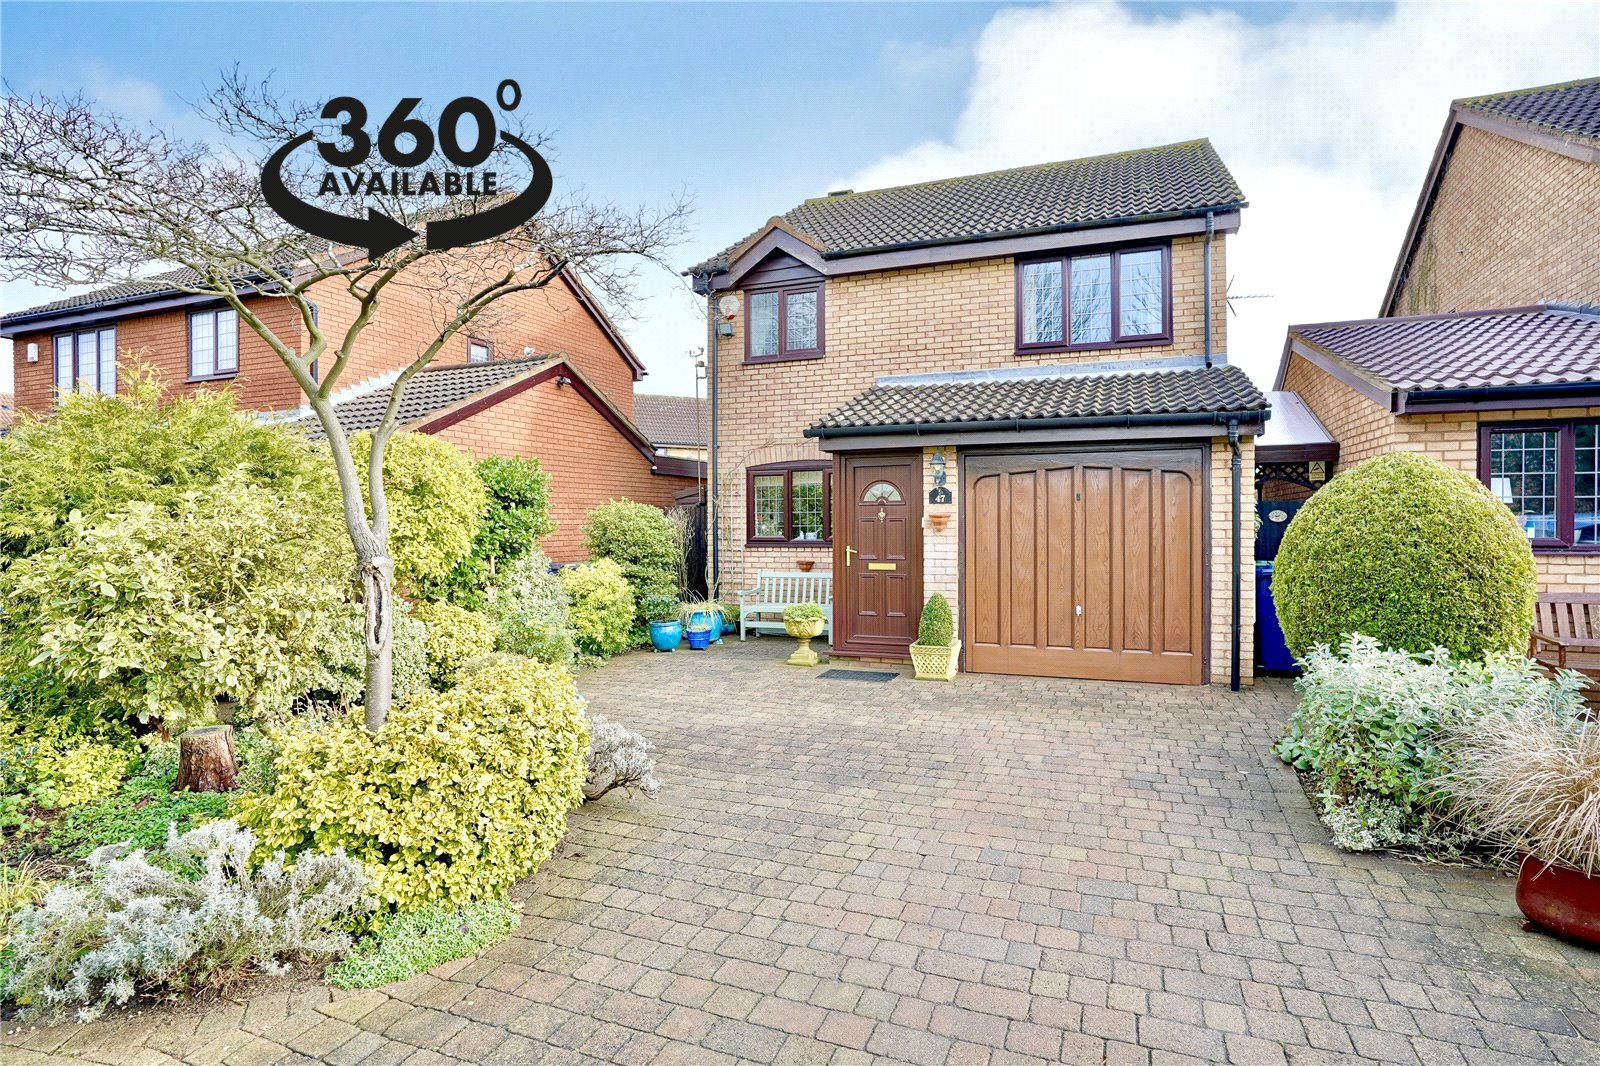 3 bed house for sale in Burwell Road, Eaton Ford  - Property Image 1